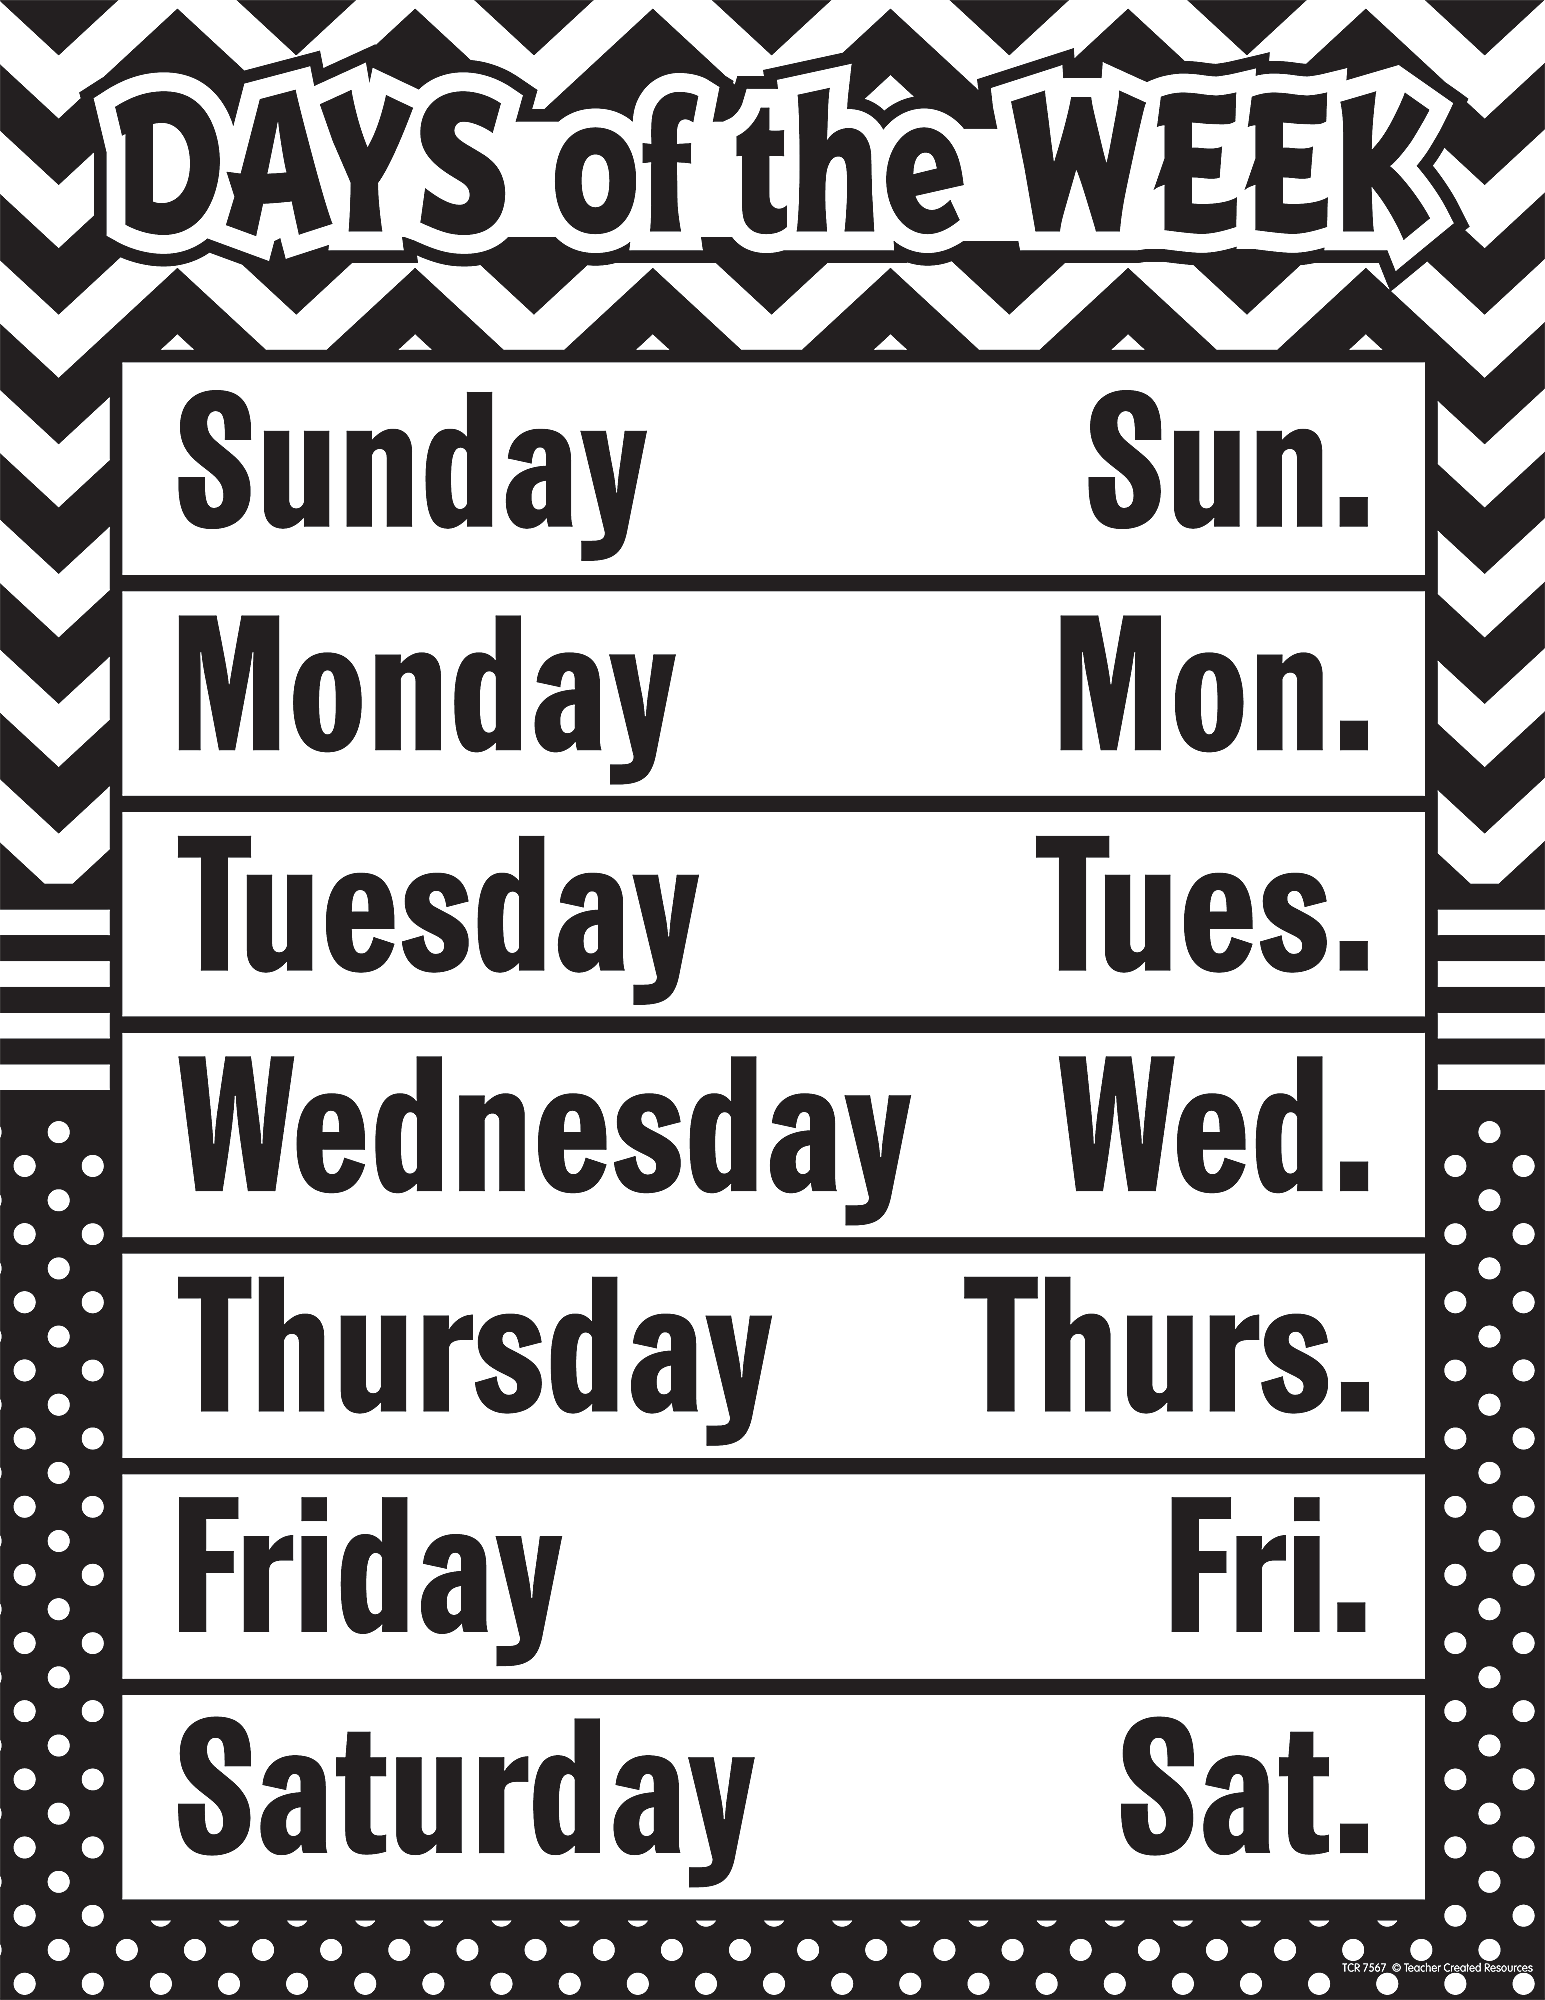 Birthday Calendar For Classroom : Black white chevron and dots days of the week chart